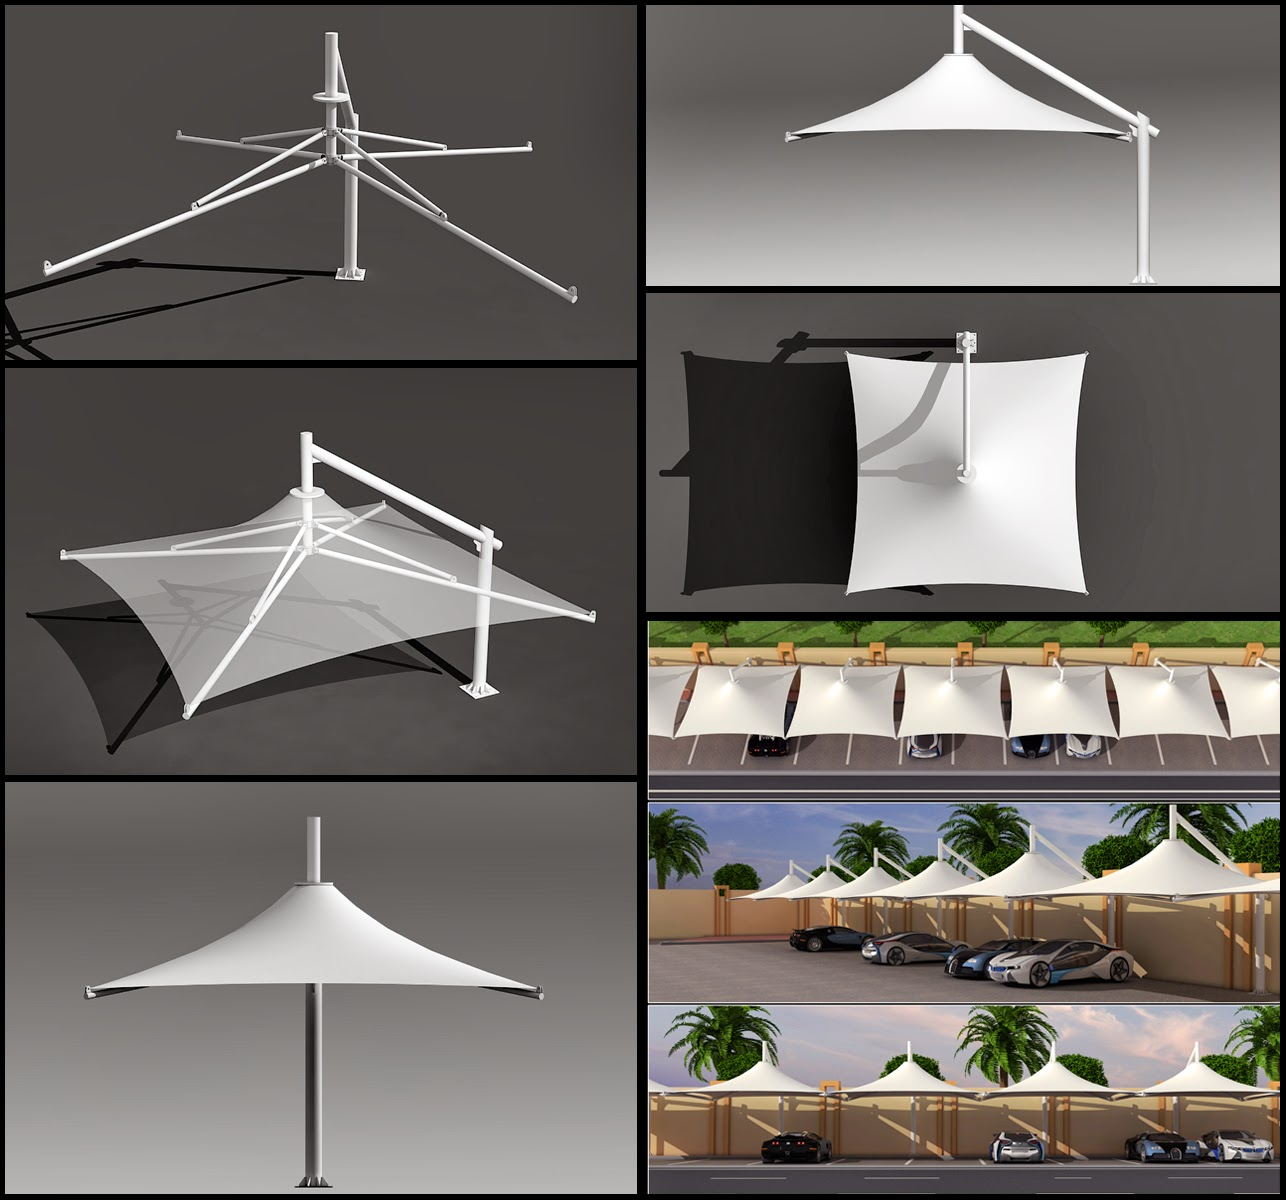 Car parking shade designs for Latest arch designs